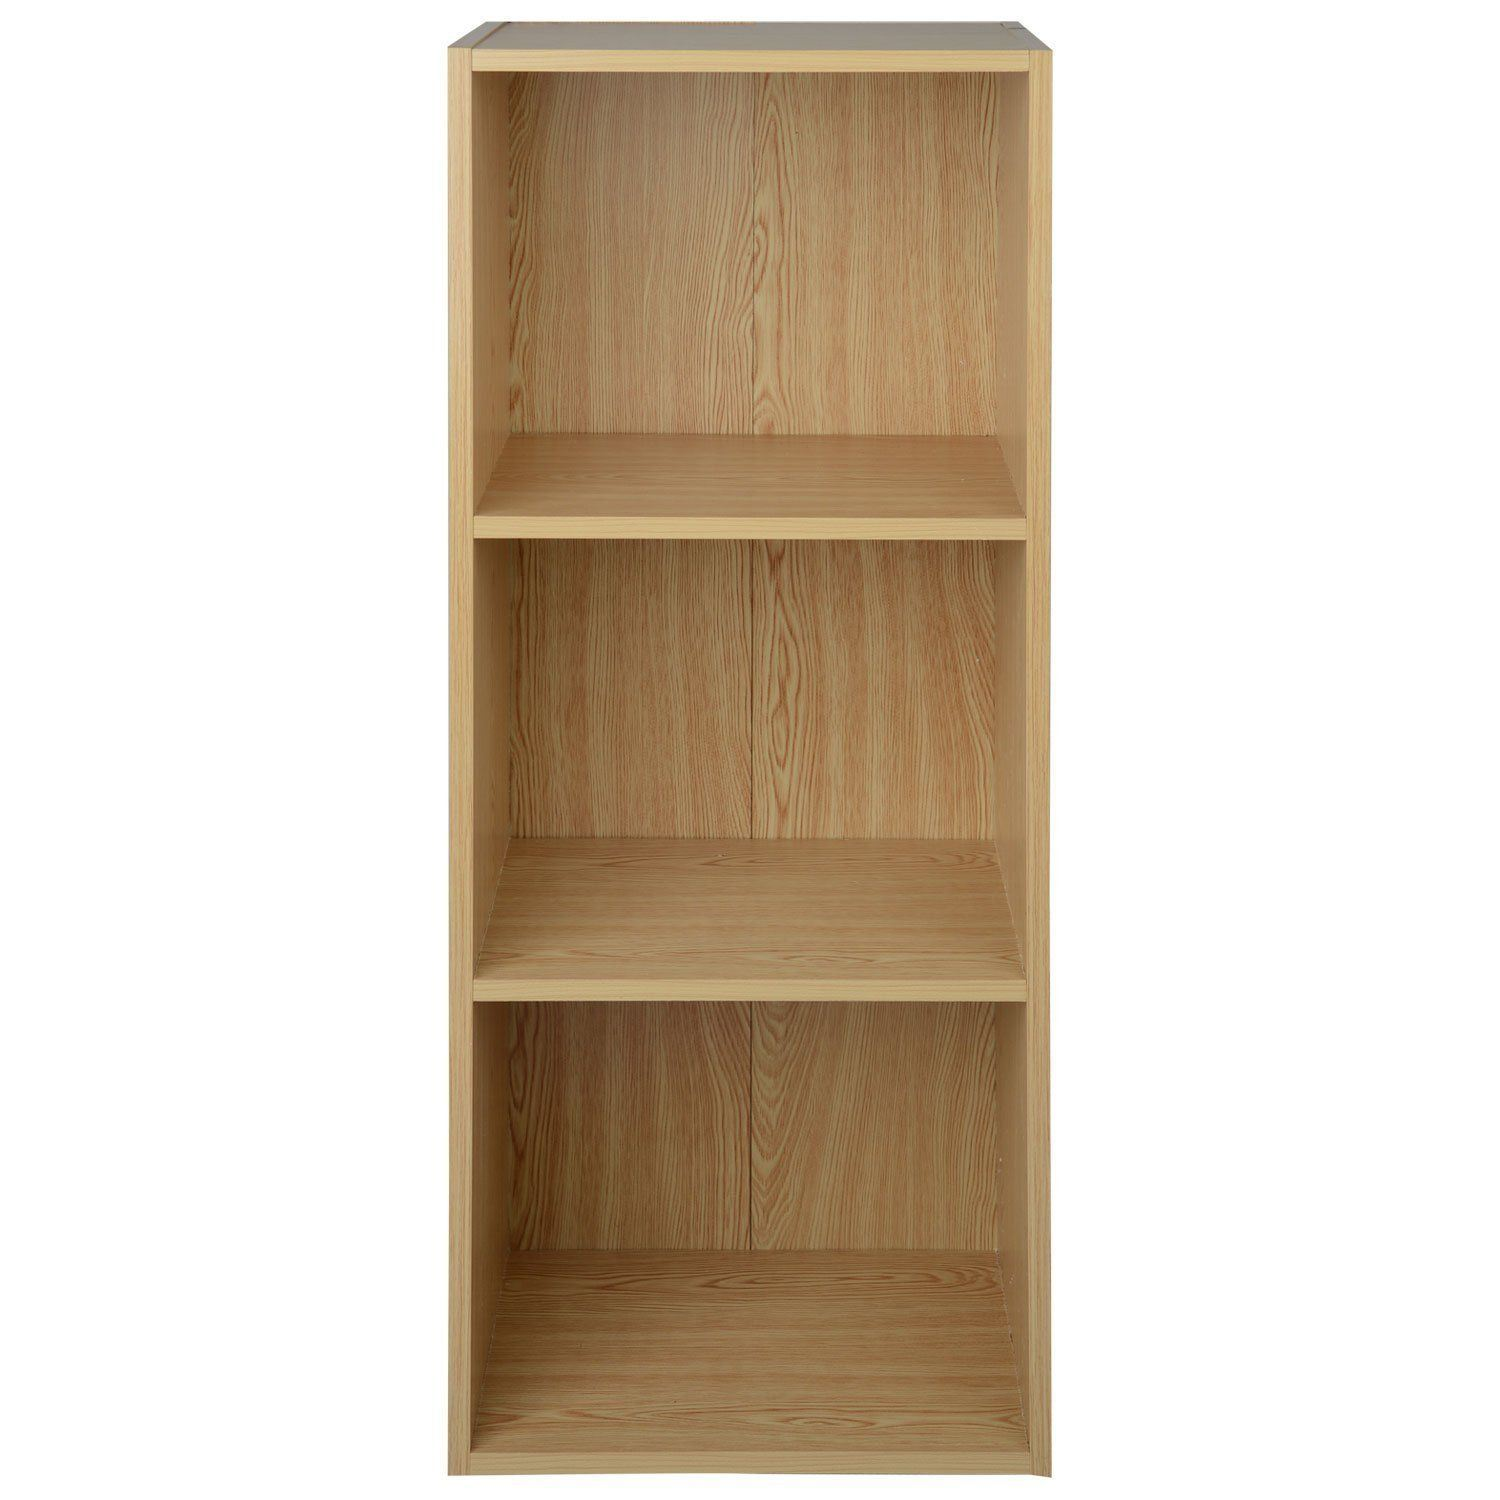 Cedar Shelving Unit